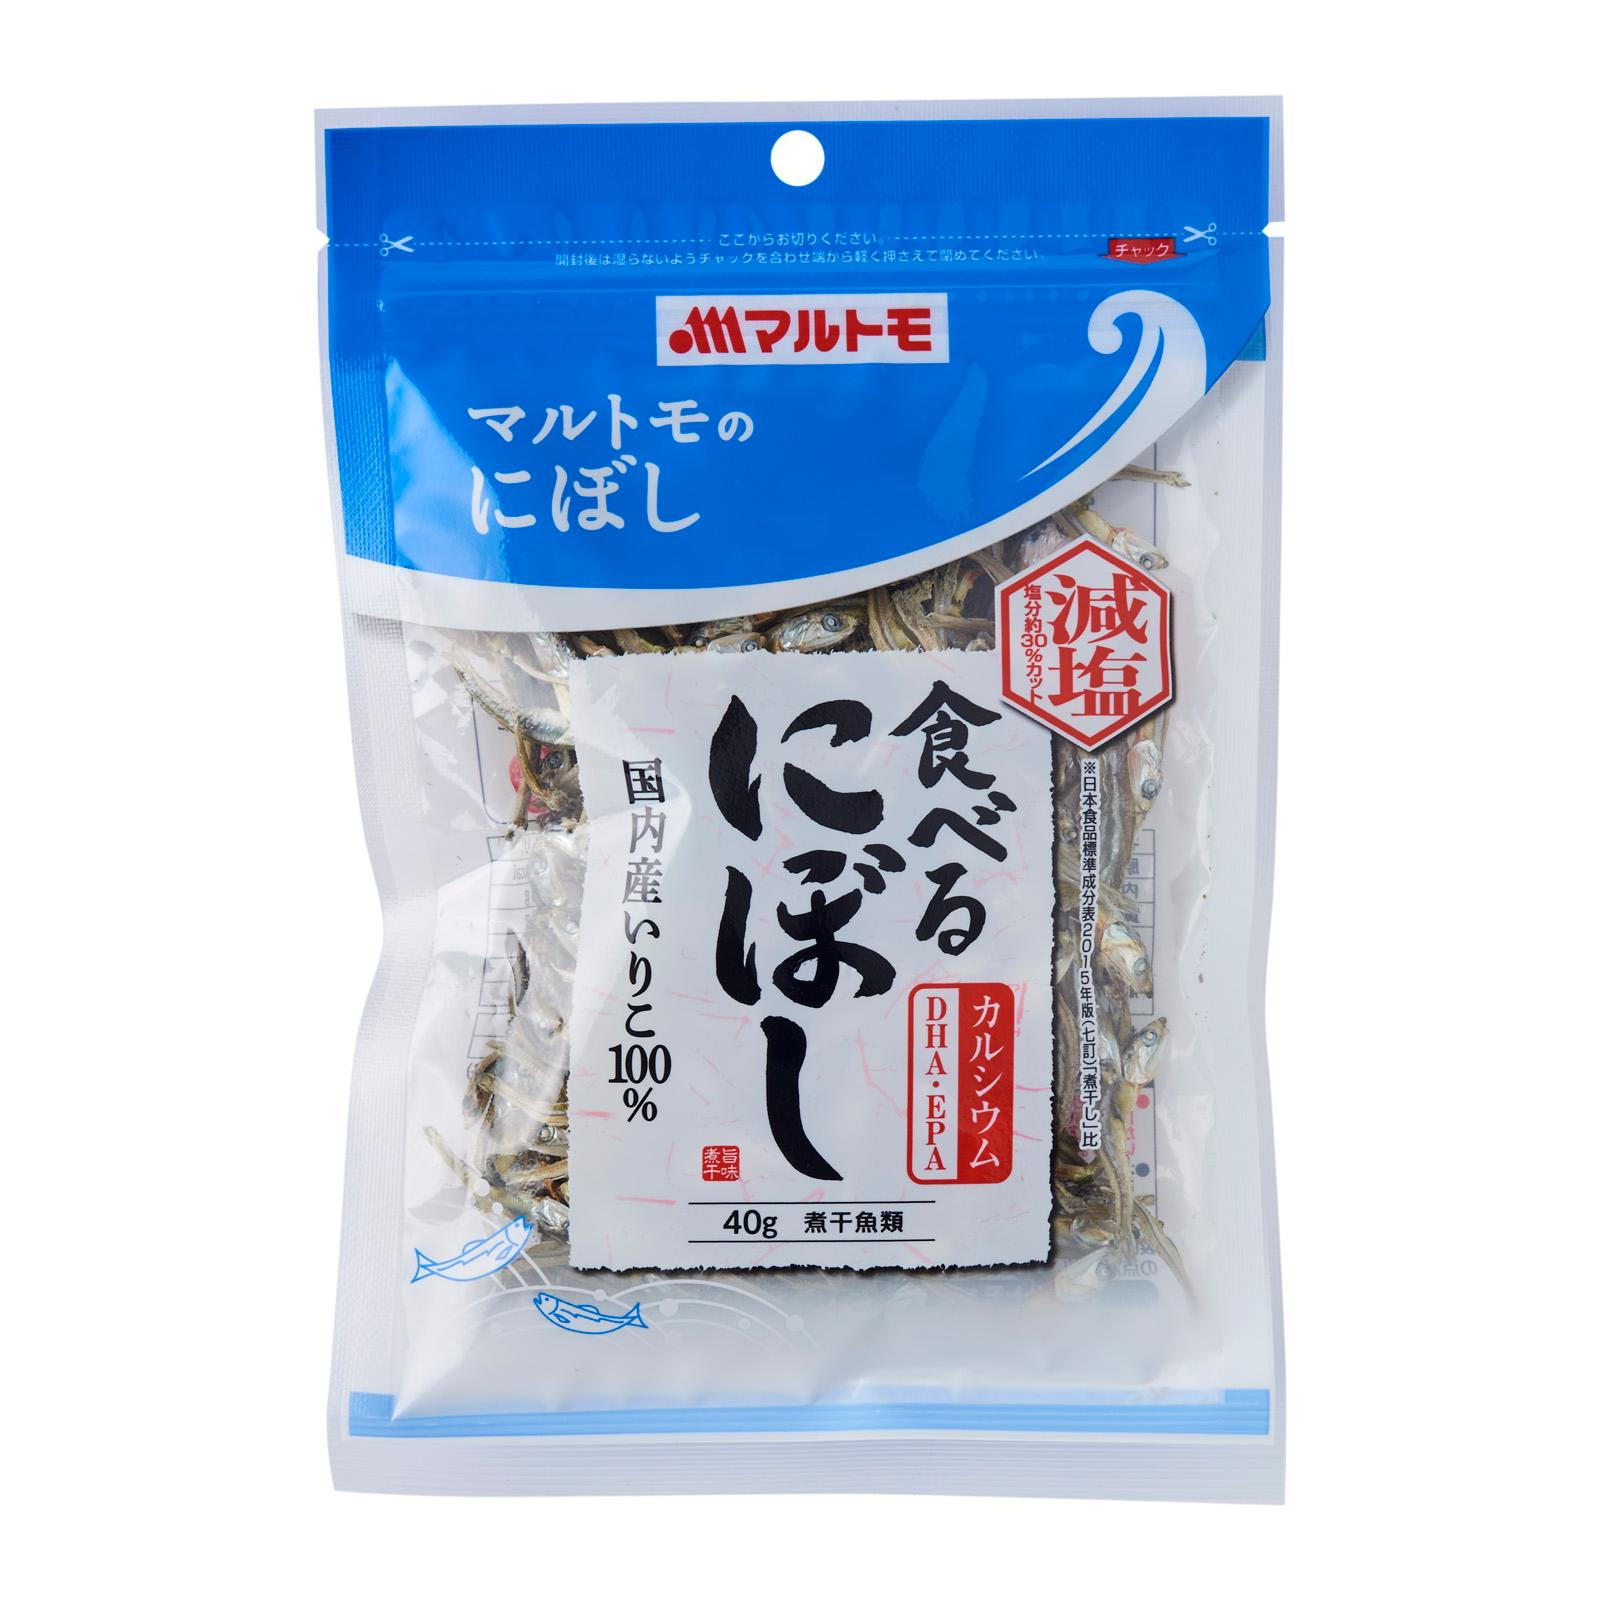 Marutomo Dried Anchovy Snack (Less Salt) - By J-Mart Japanese Food Market